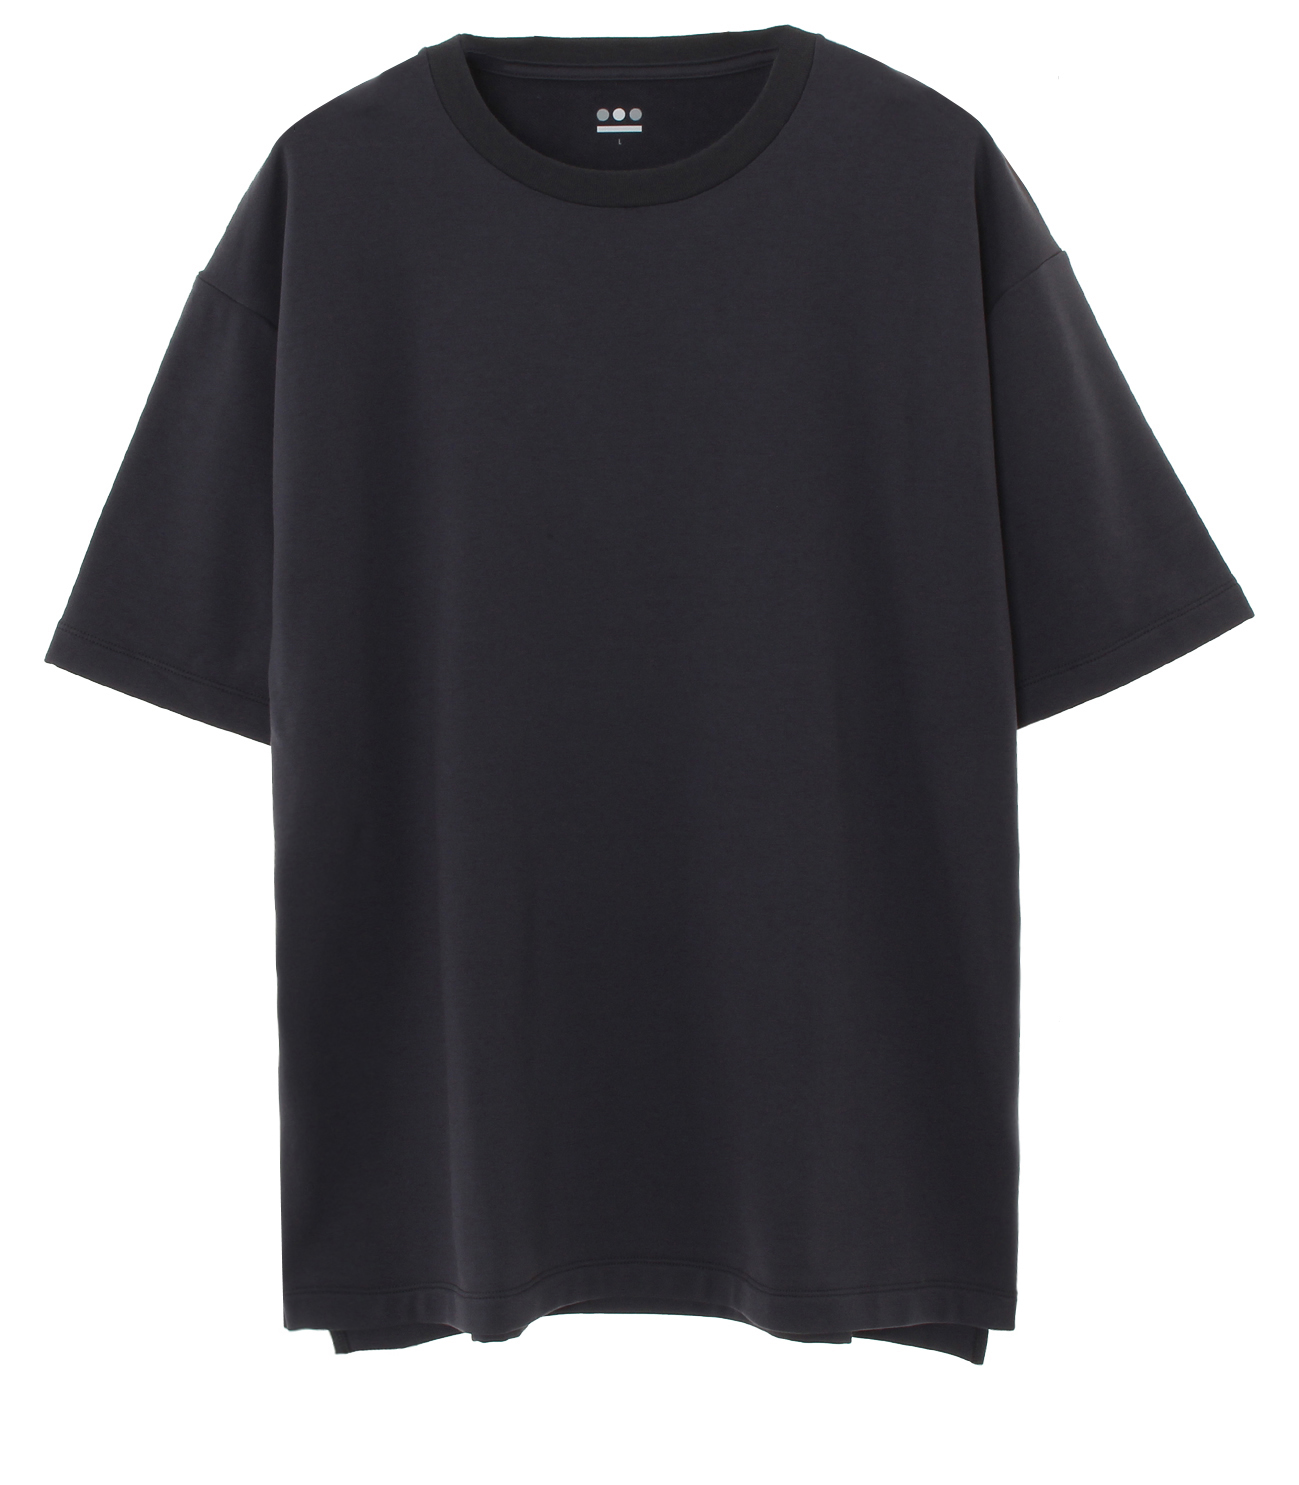 stretch terry s/s crewneck 詳細画像 black 1